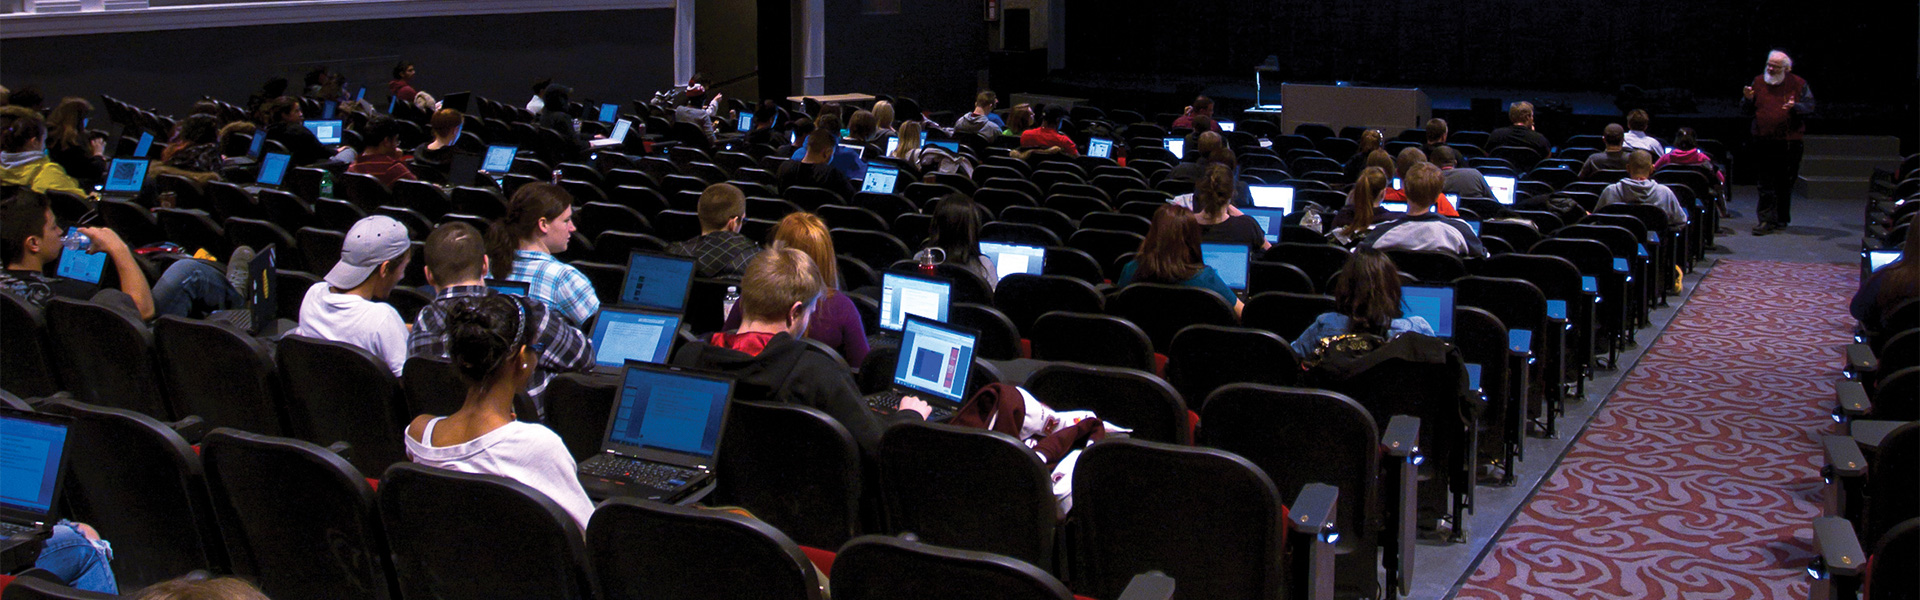 Students in the Regent Theatre lecture hall